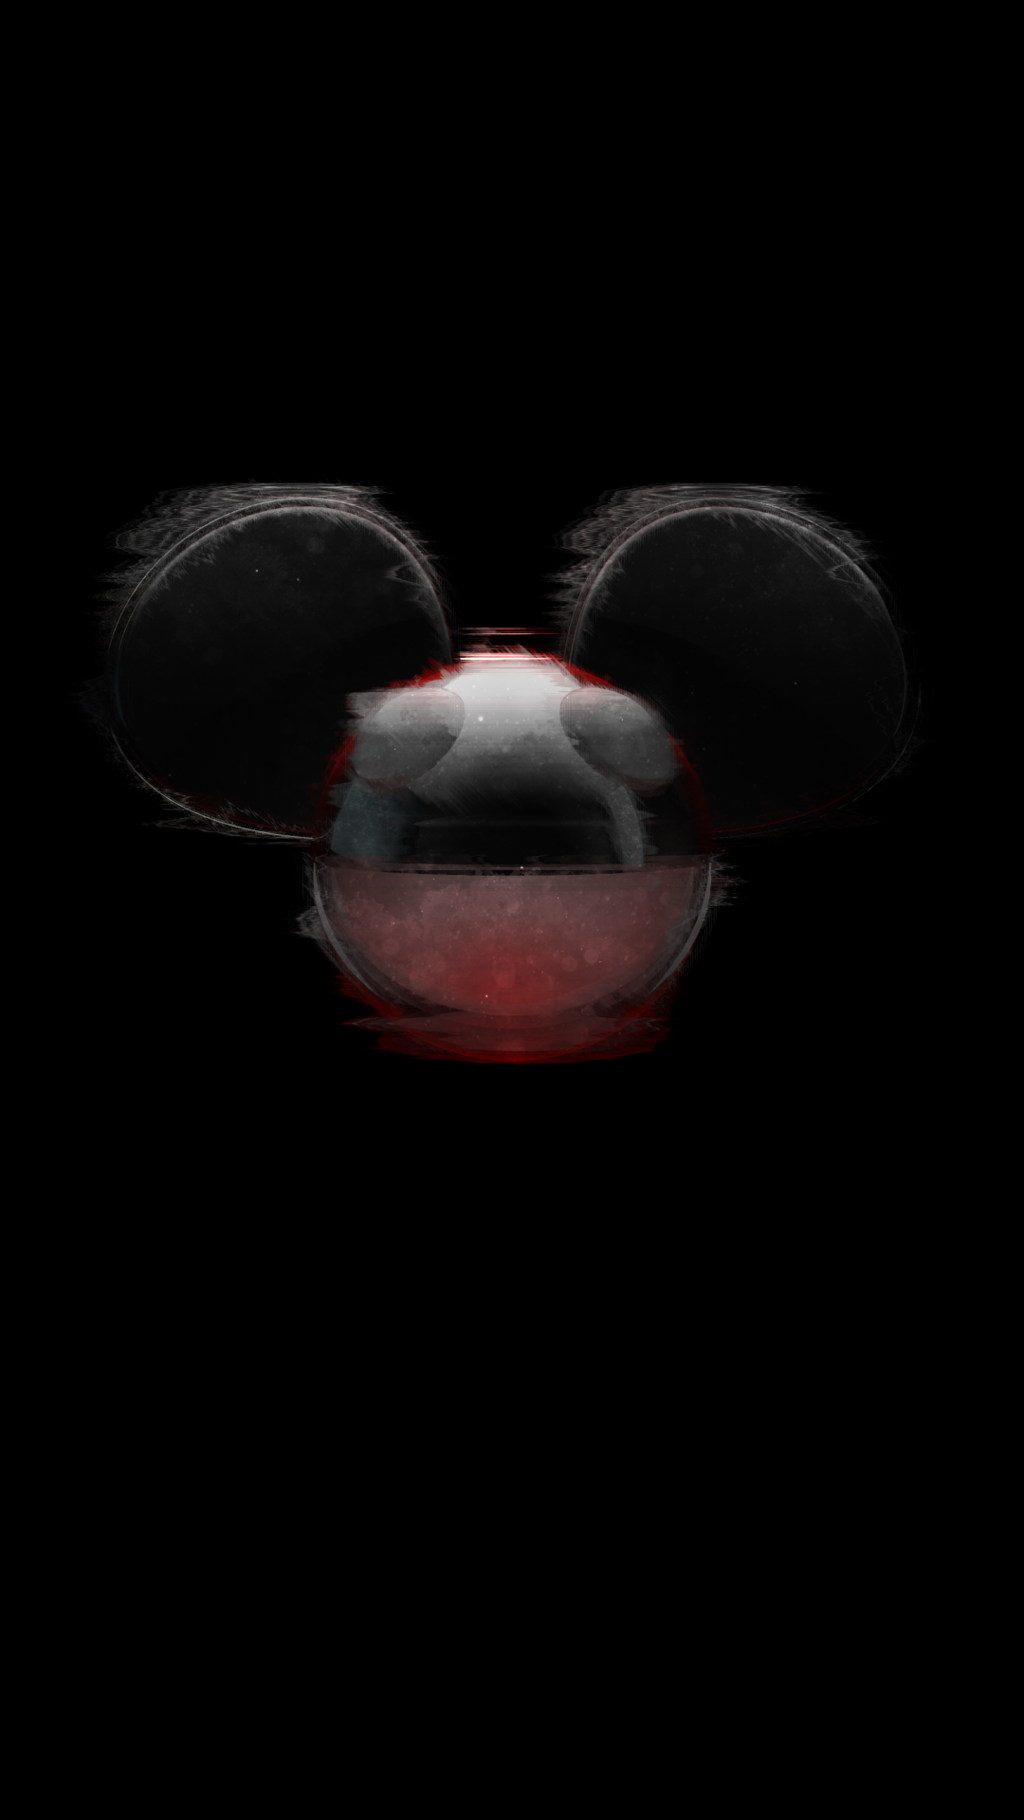 Deadmau5 Phone wallpaper thing by Omnipotent Duck on 1024x1820